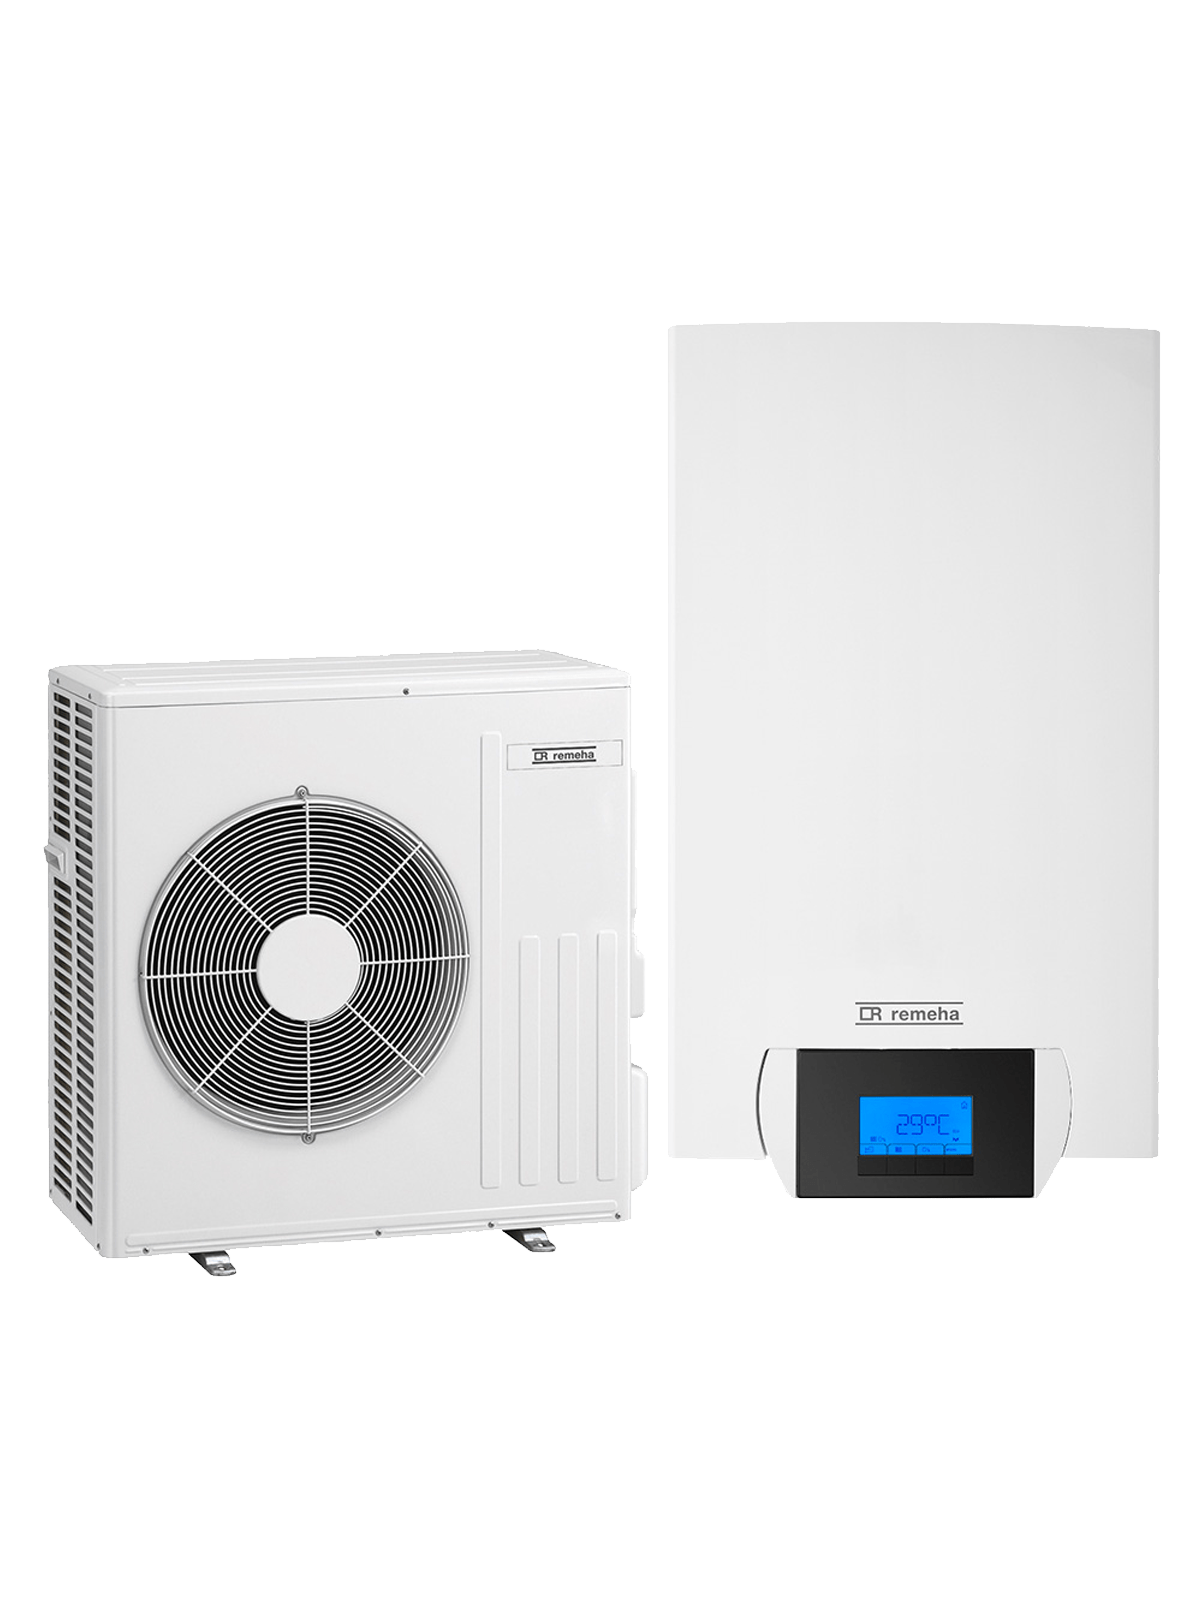 Remeha Mercuria Hybride Warmtepomp 4,5 kW